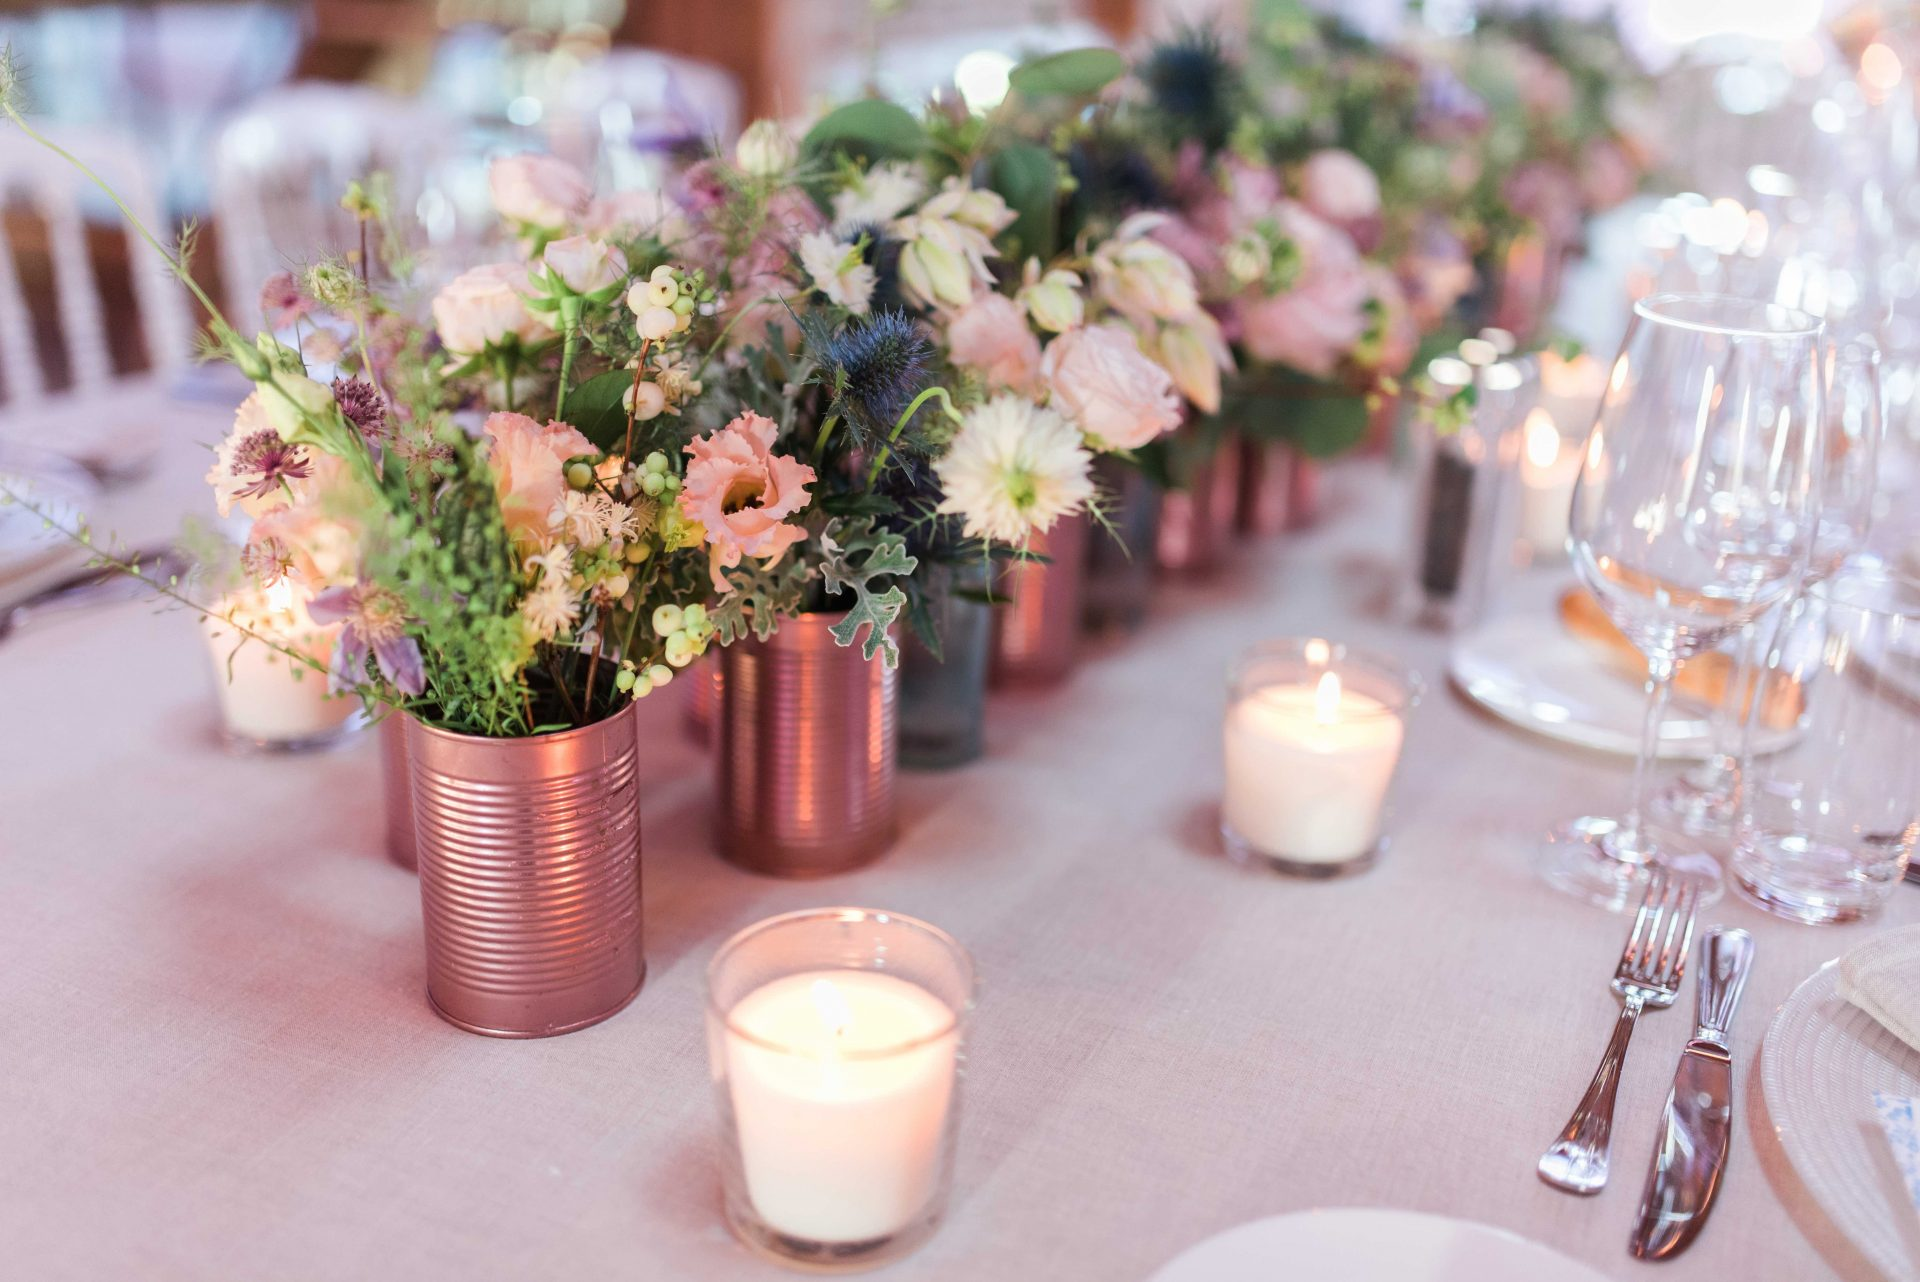 melisande laurent 65 2 - An eco-responsible wedding? What are the best practices?